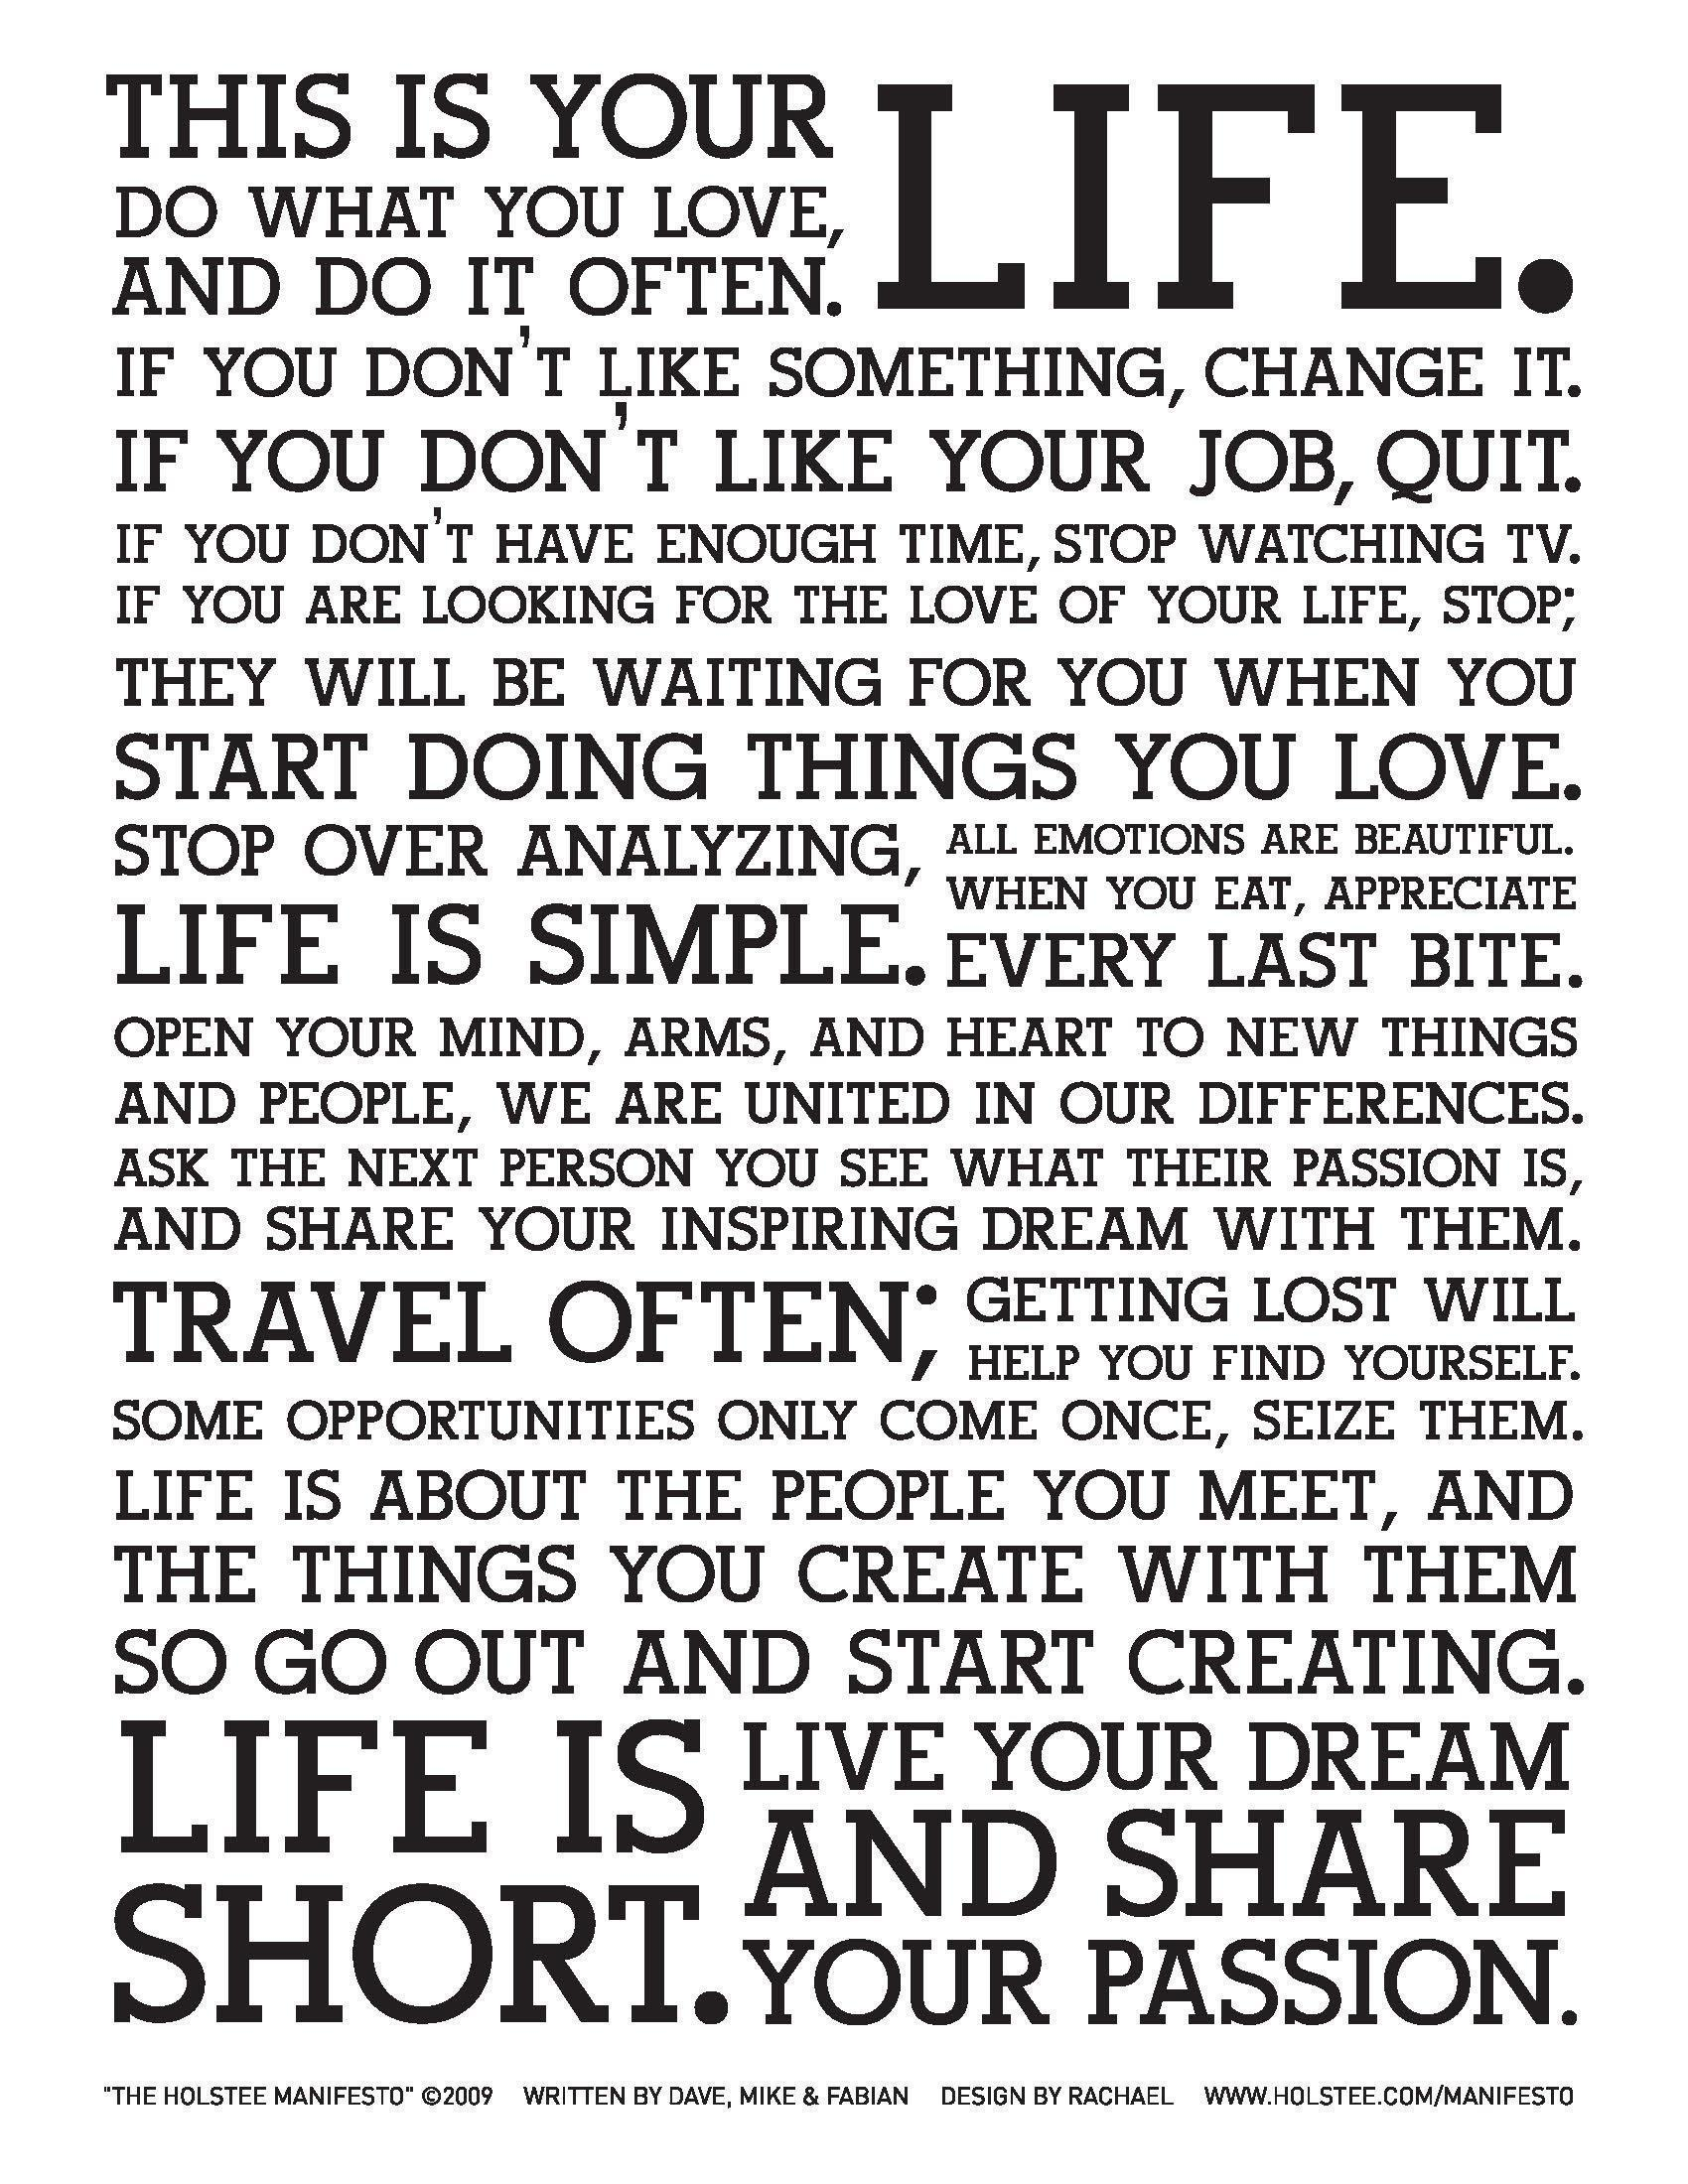 holstee manifesto wallpapers wallpaper cave. Black Bedroom Furniture Sets. Home Design Ideas